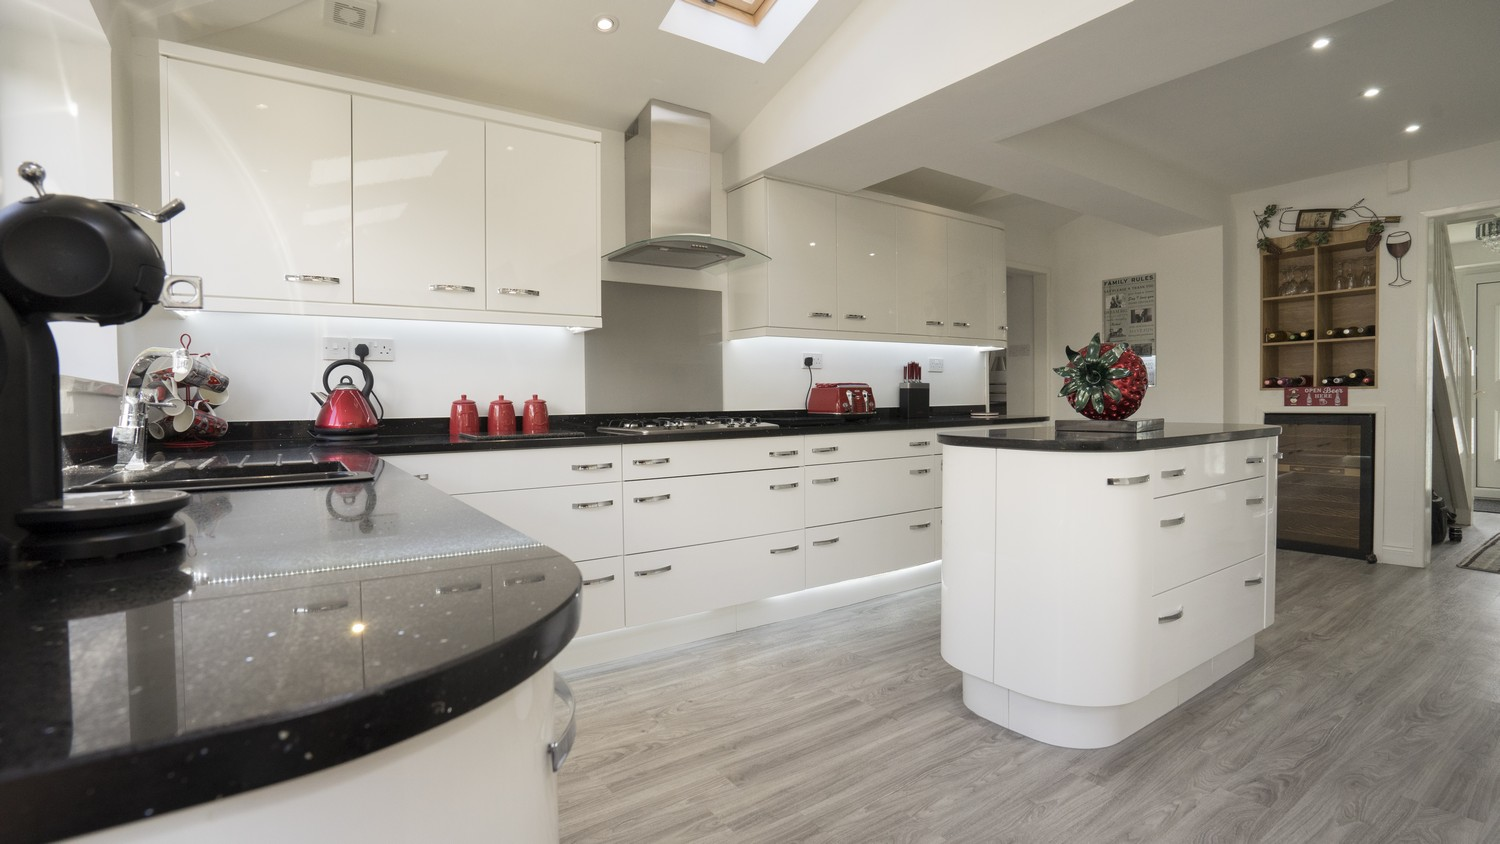 Gloss white kitchen with central island with curved corner cupboards and a large selection of drawers.